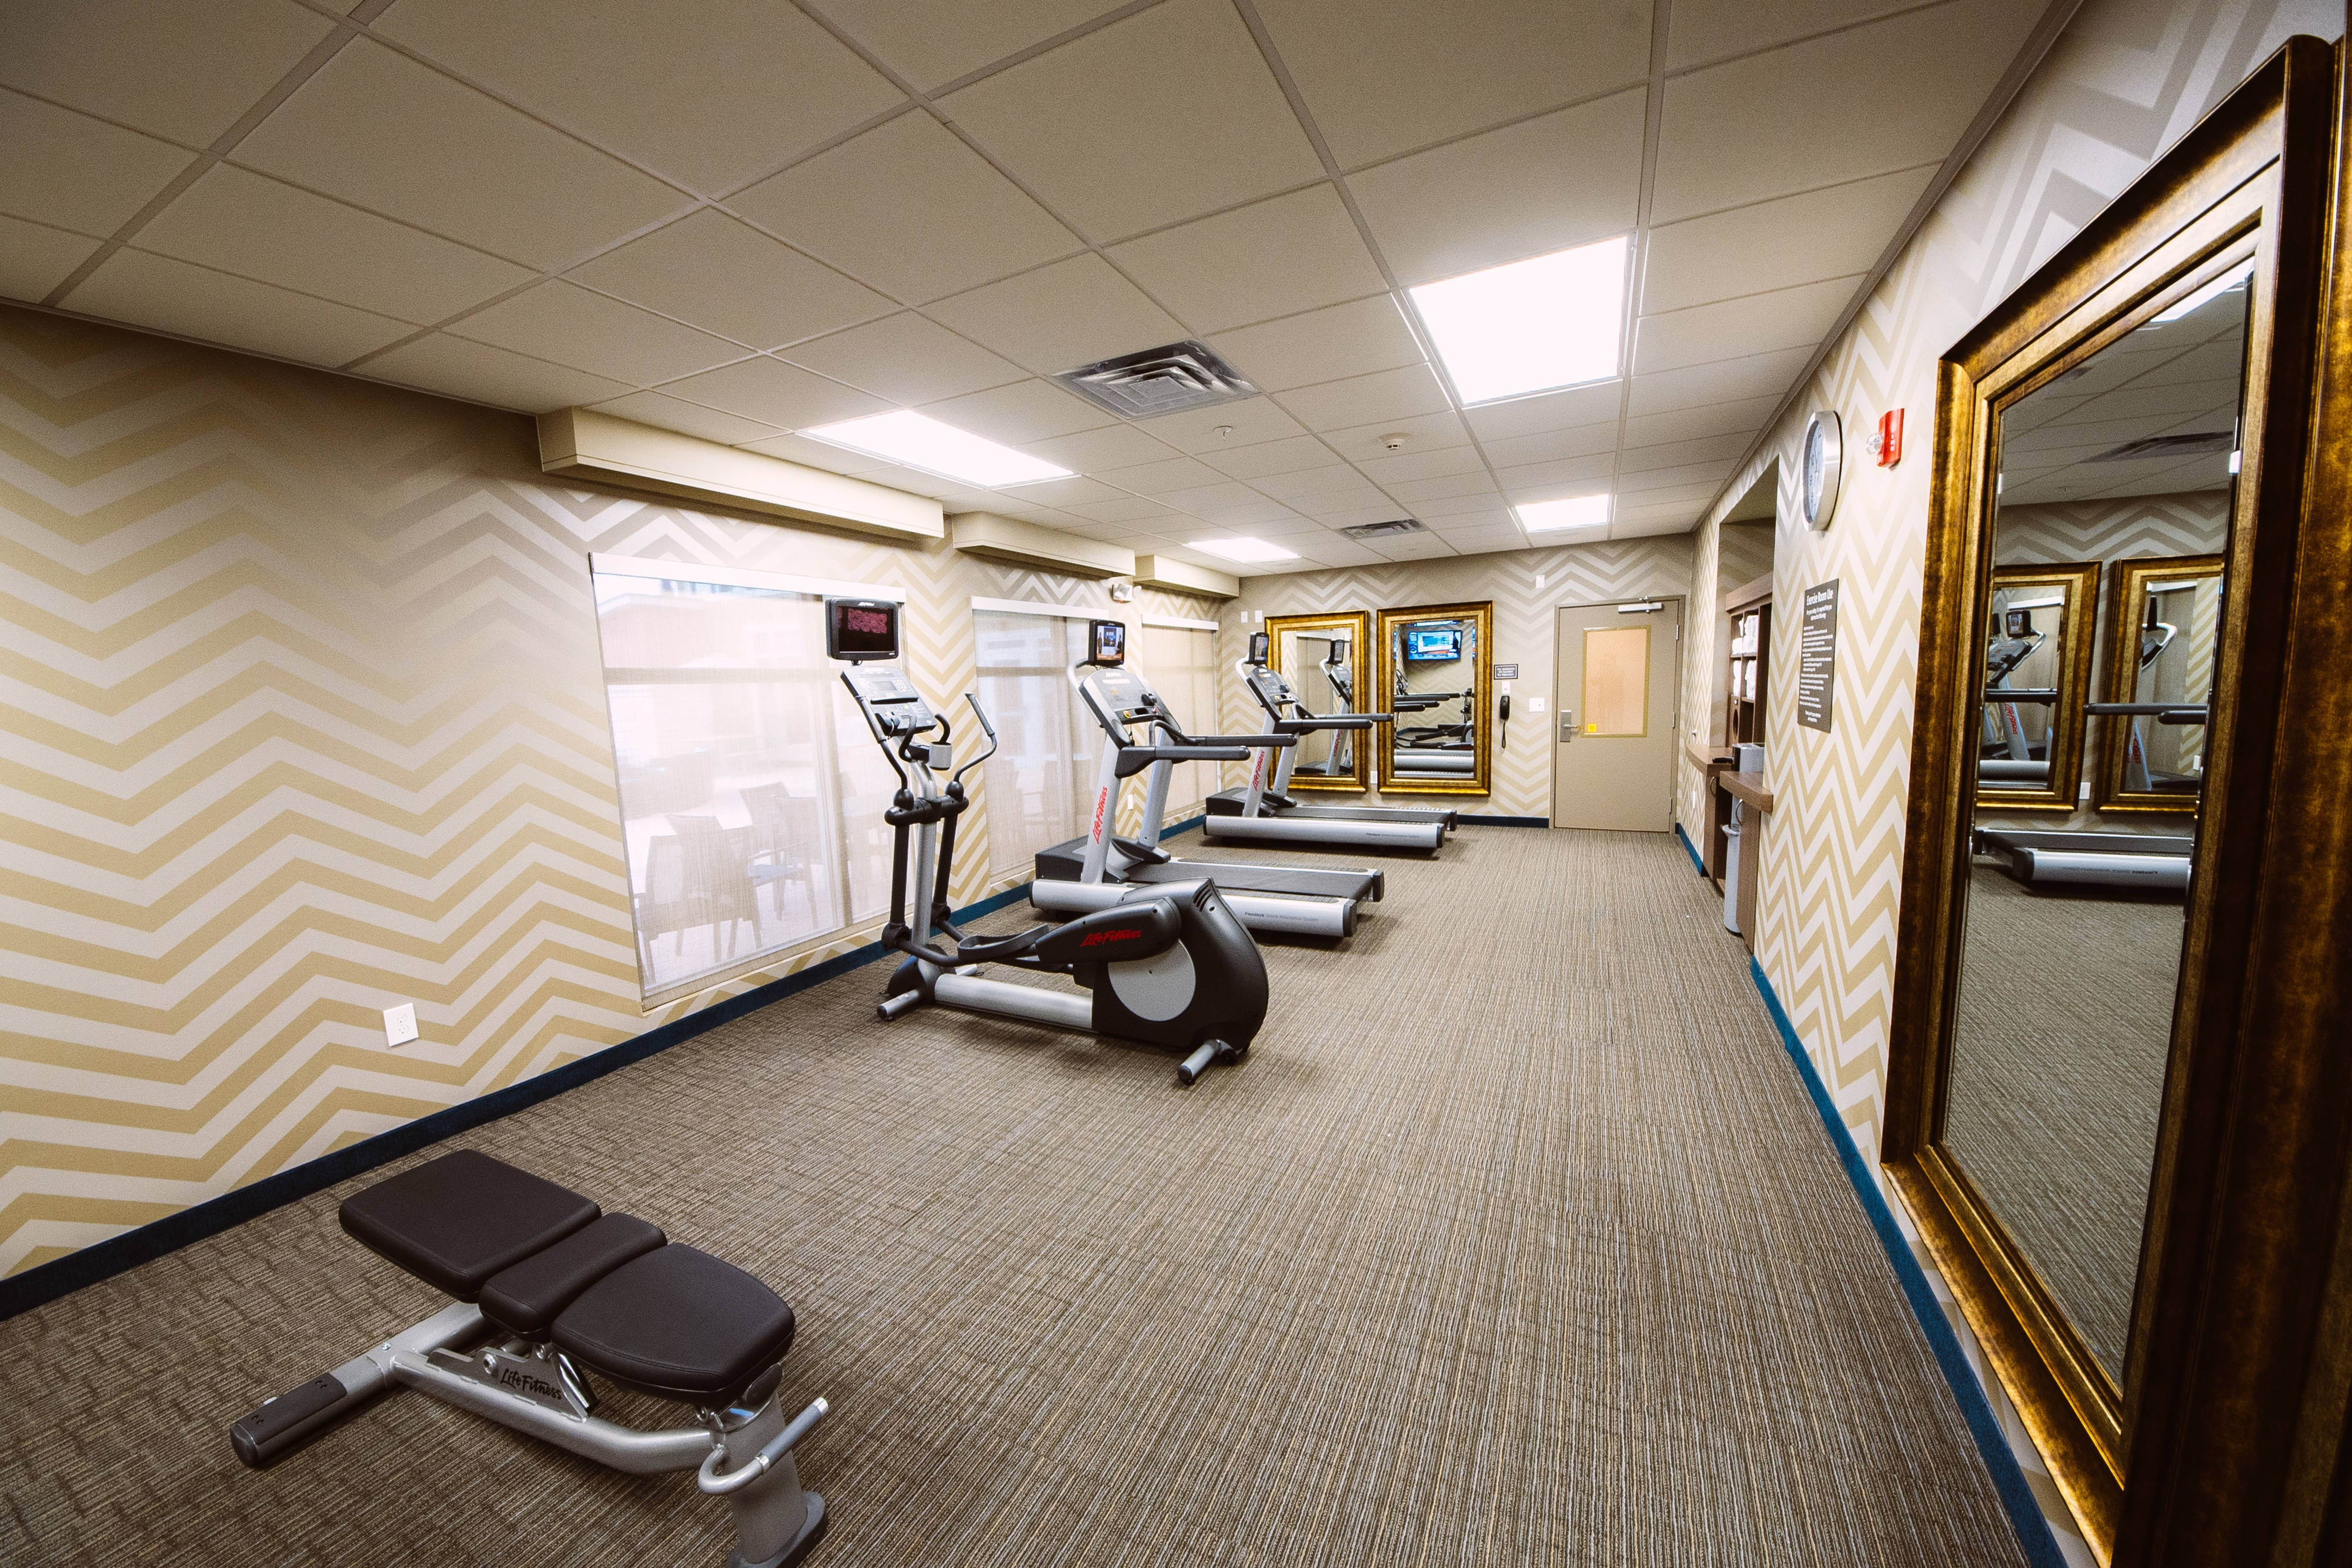 24 Hour Exercise facility